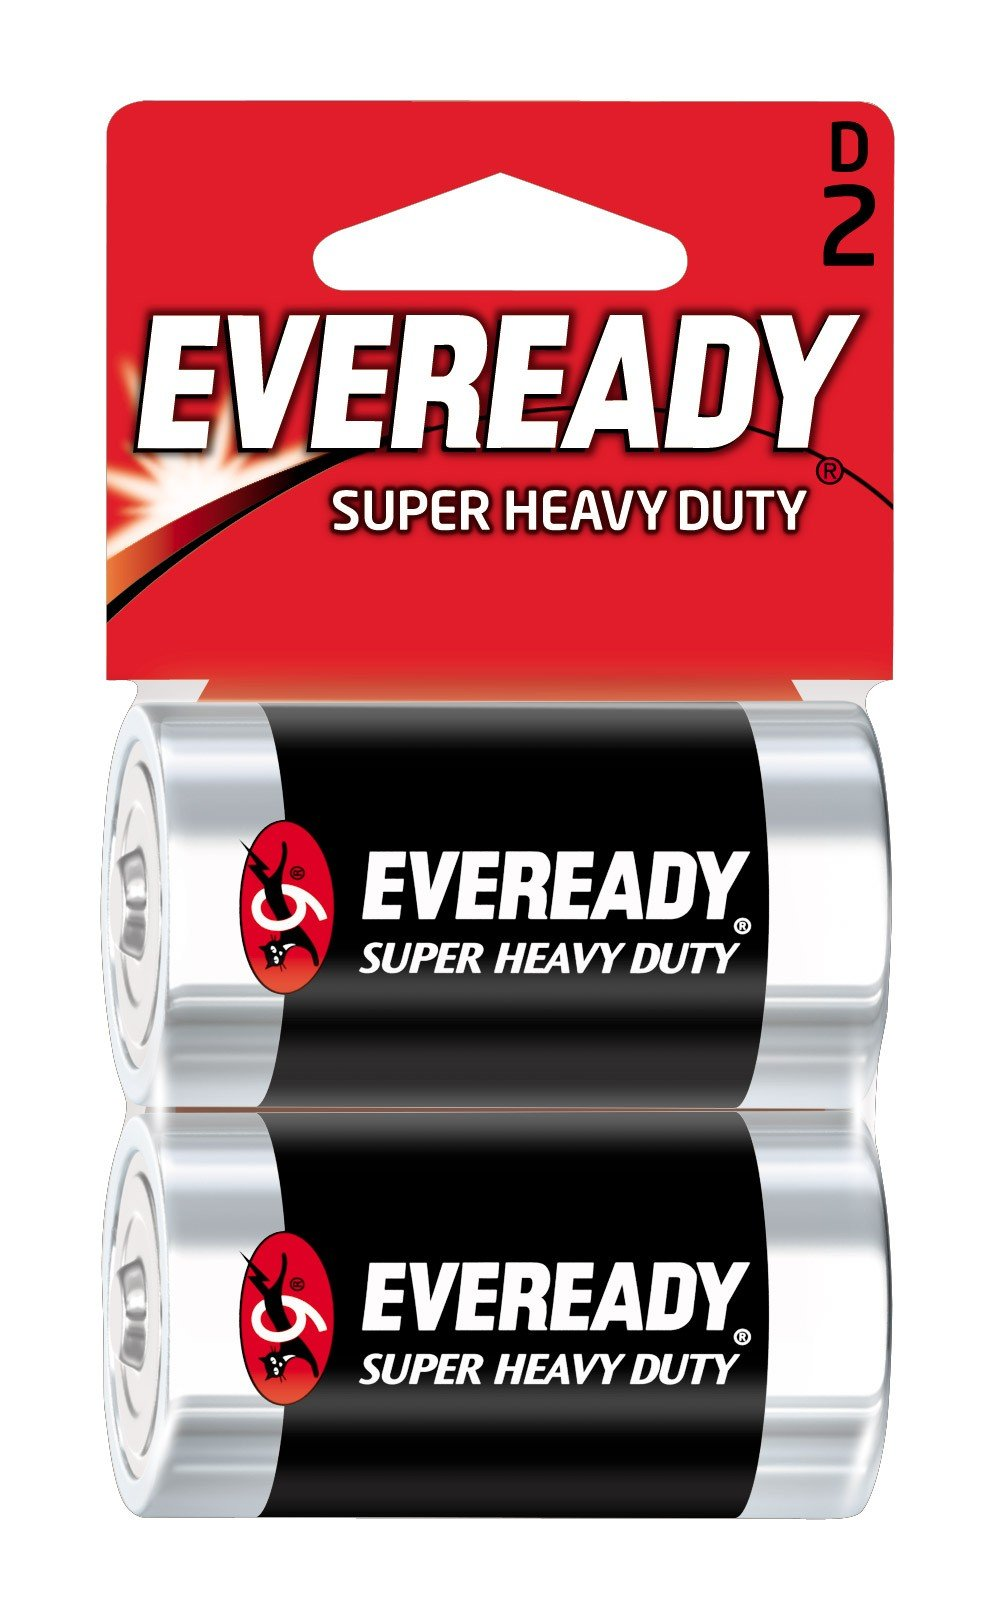 Energizer Eveready Super Heavy Duty Battery, D Size, 2-Count (Pack of 12)